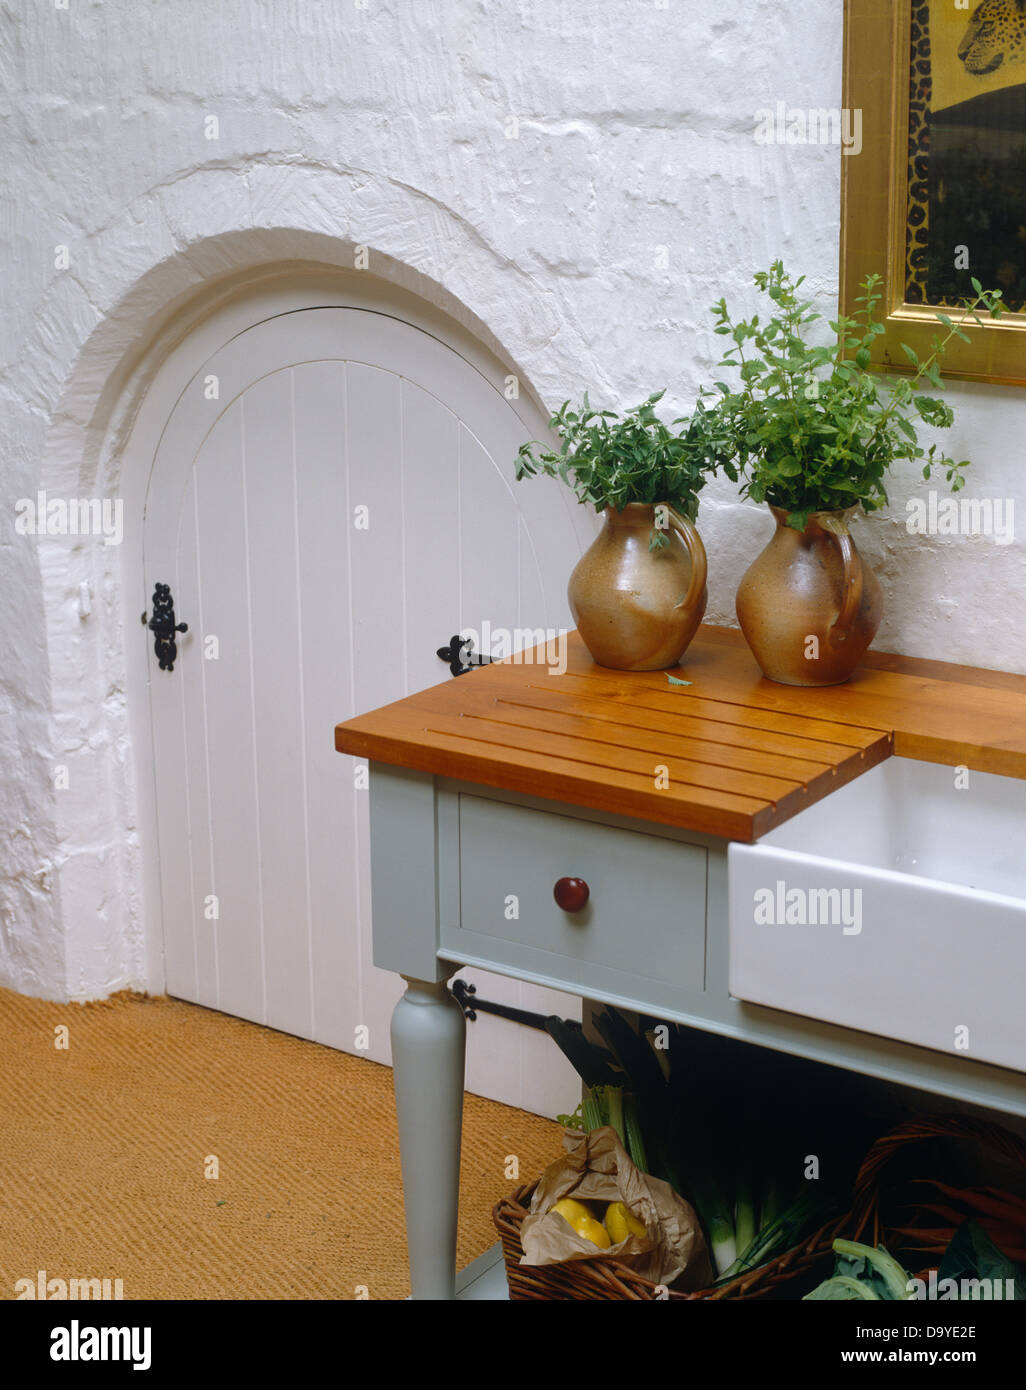 kitchen draining board white hutches for herbs in pottery jugs on wooden freestanding stock unit with belfast sink next to original arched doorway